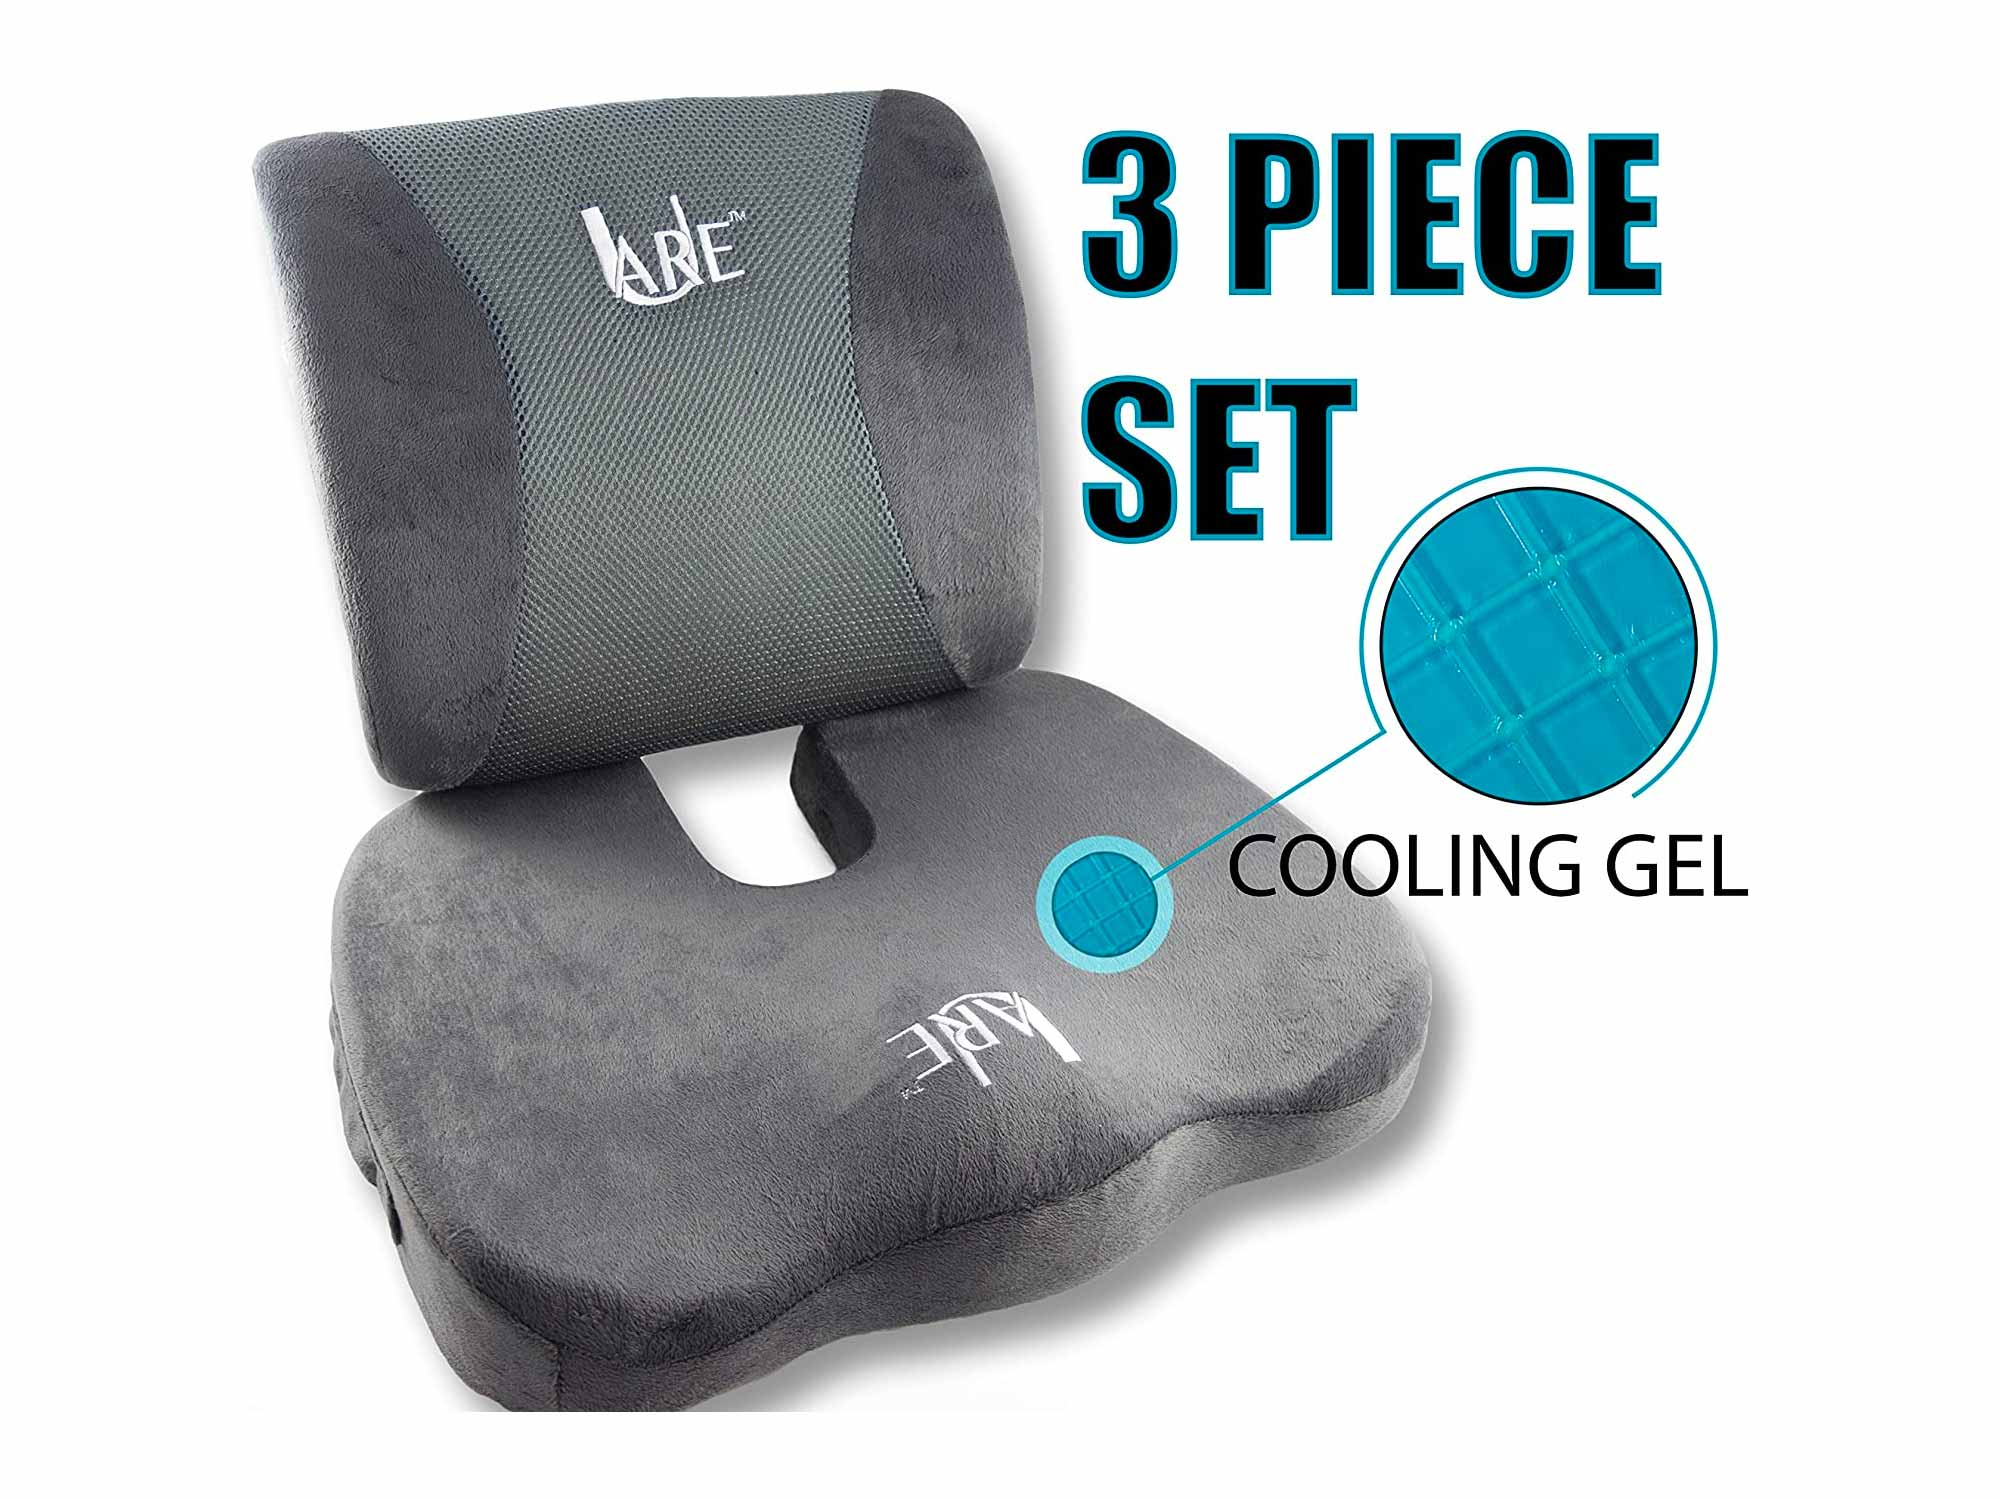 Cool Gel Memory Foam Seat Cushion with Rain Cover and Lumbar Support Pillow for Office Chair and Car Seat Cushions - Ultimate Comfort Set Relieves Back Pain, Tail Bone Pain, Sciatica Seat Cushion